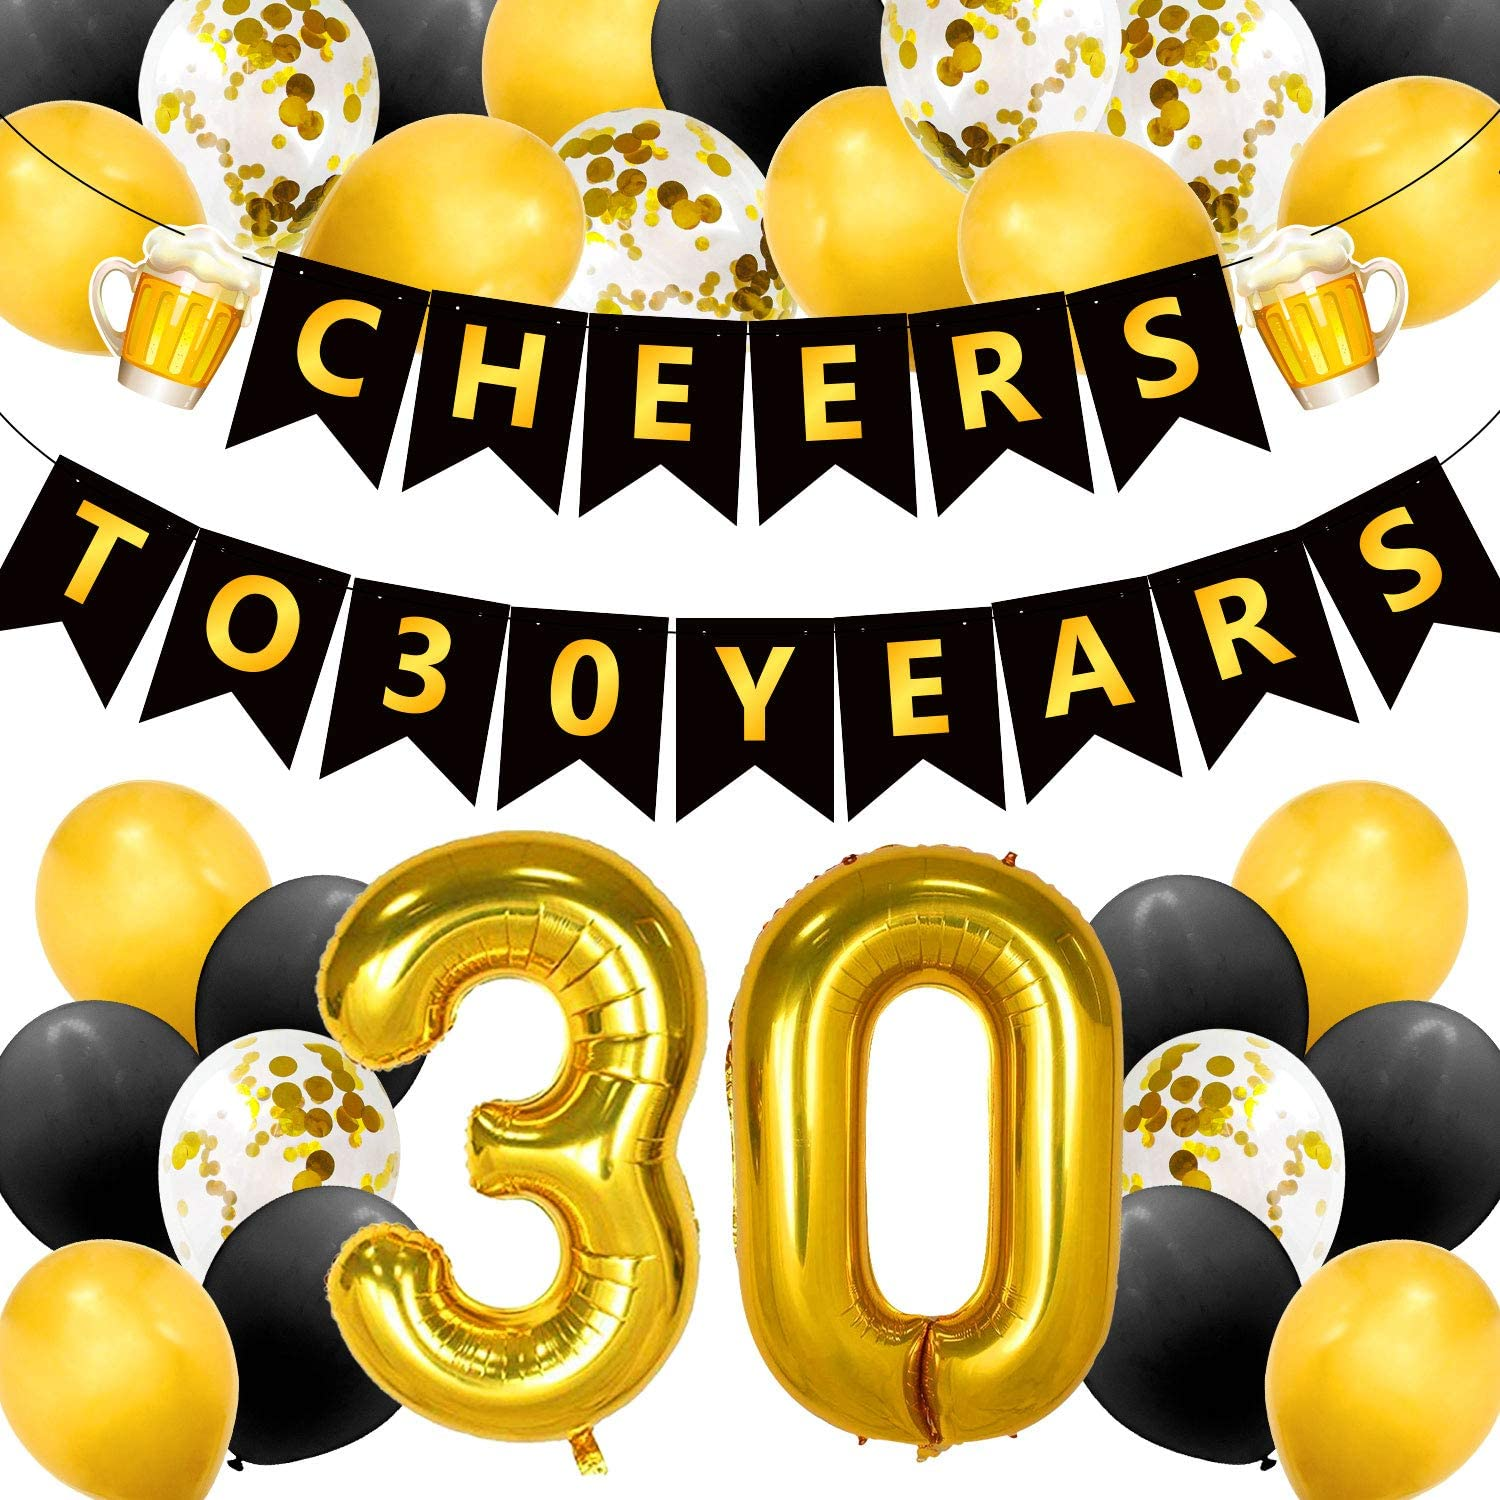 Cheers to 30 Years Party Decorations 30s Anniversary Banner 40 inch 30 Number Gold Foil Balloons Black Gold Confetti Latex Balloons for Thirty Birthday or Wedding Party Supplies